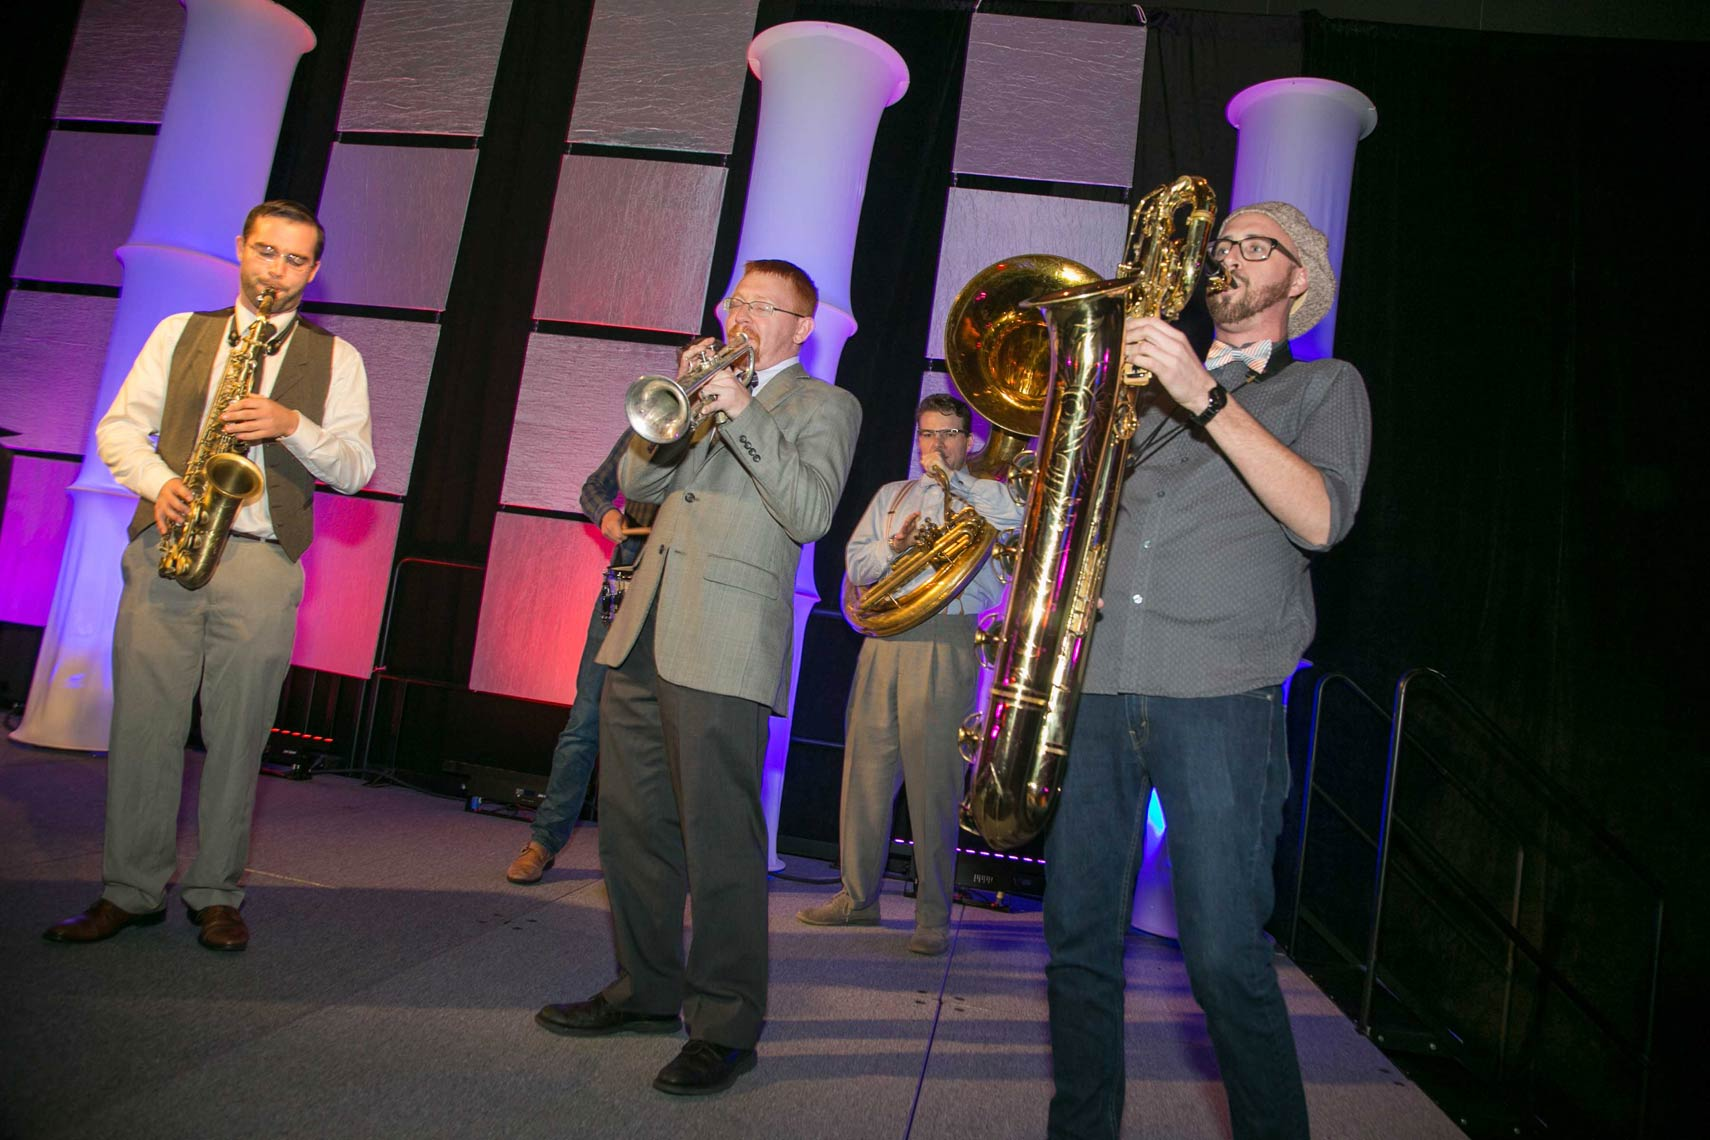 Brass Band Playing at the BuildFest Boston Gala 2016